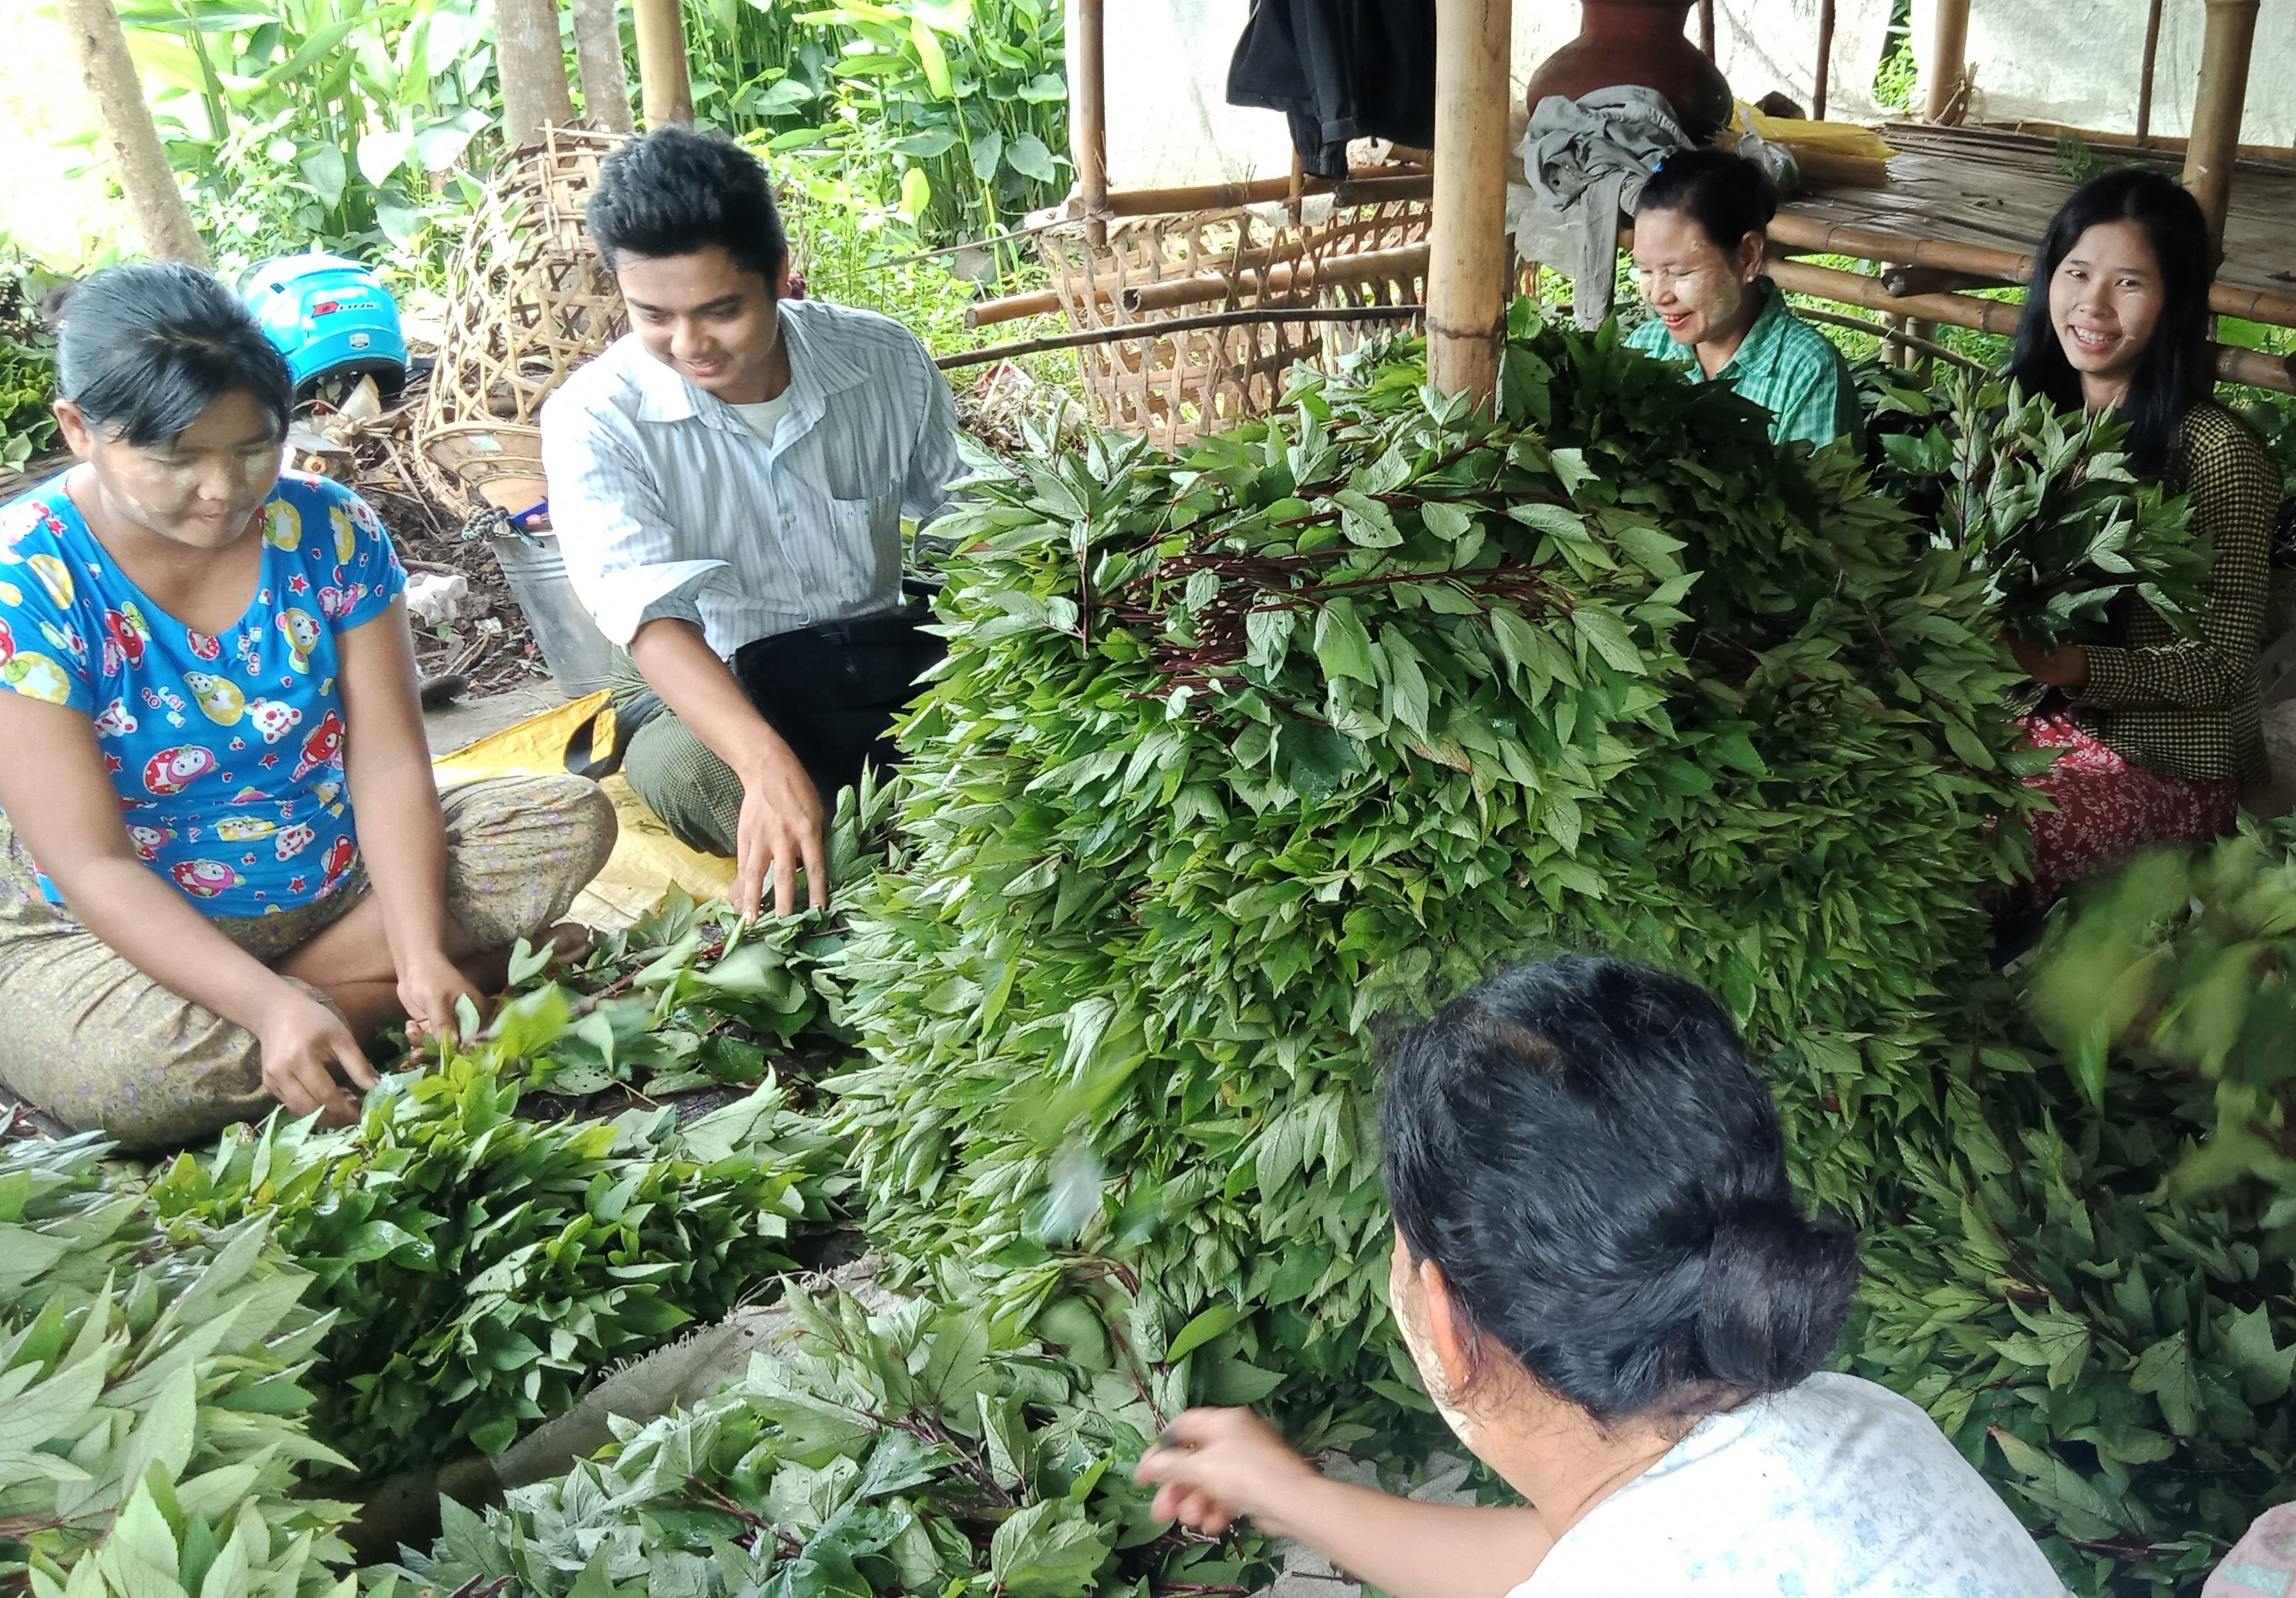 Team Makes Field Trip in Myanmar interacting